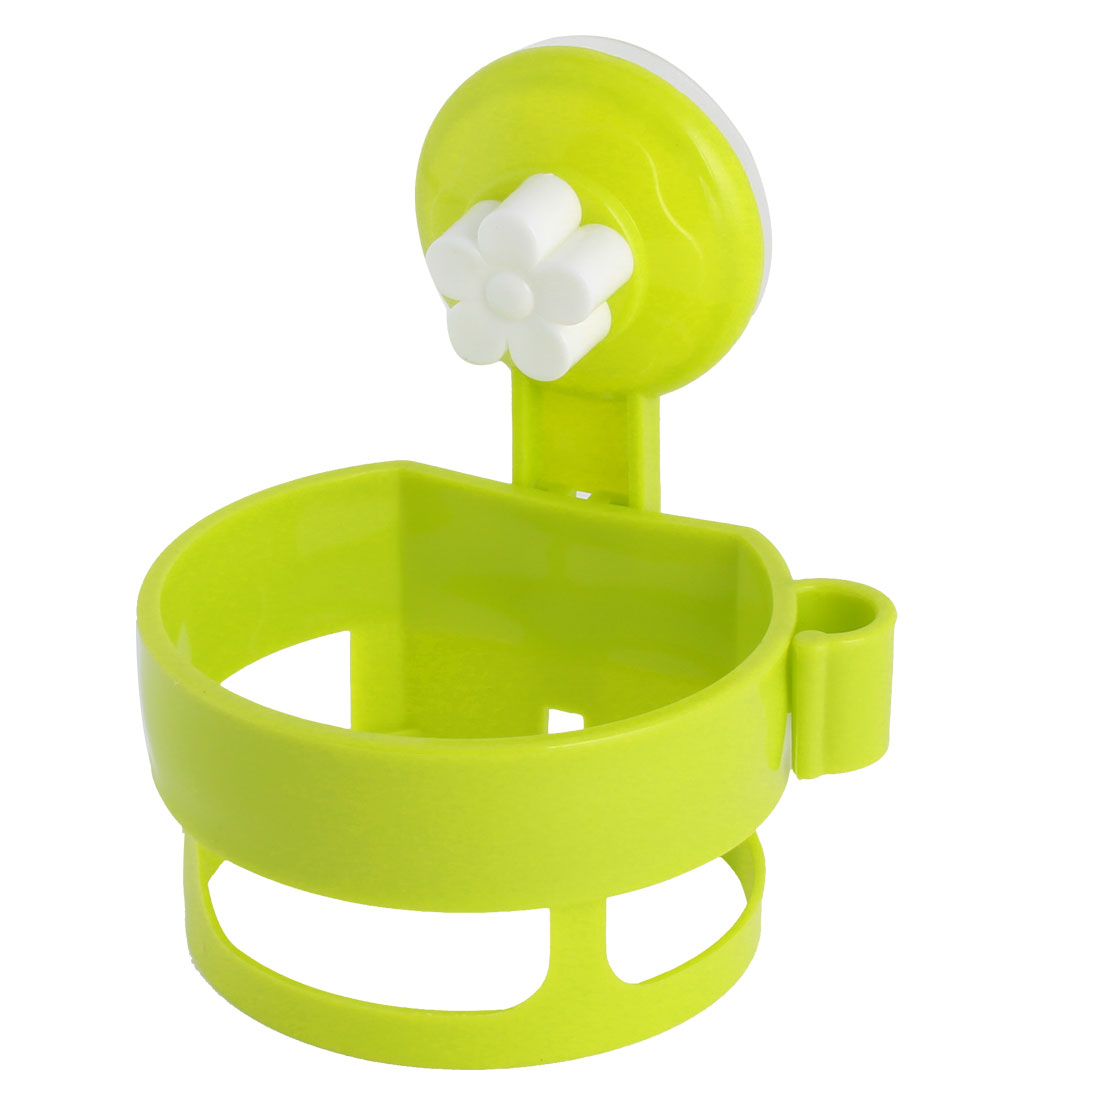 Home Suction Cup Plastic Round Hair Blow Dryer Holder Stand Rack Pale Green